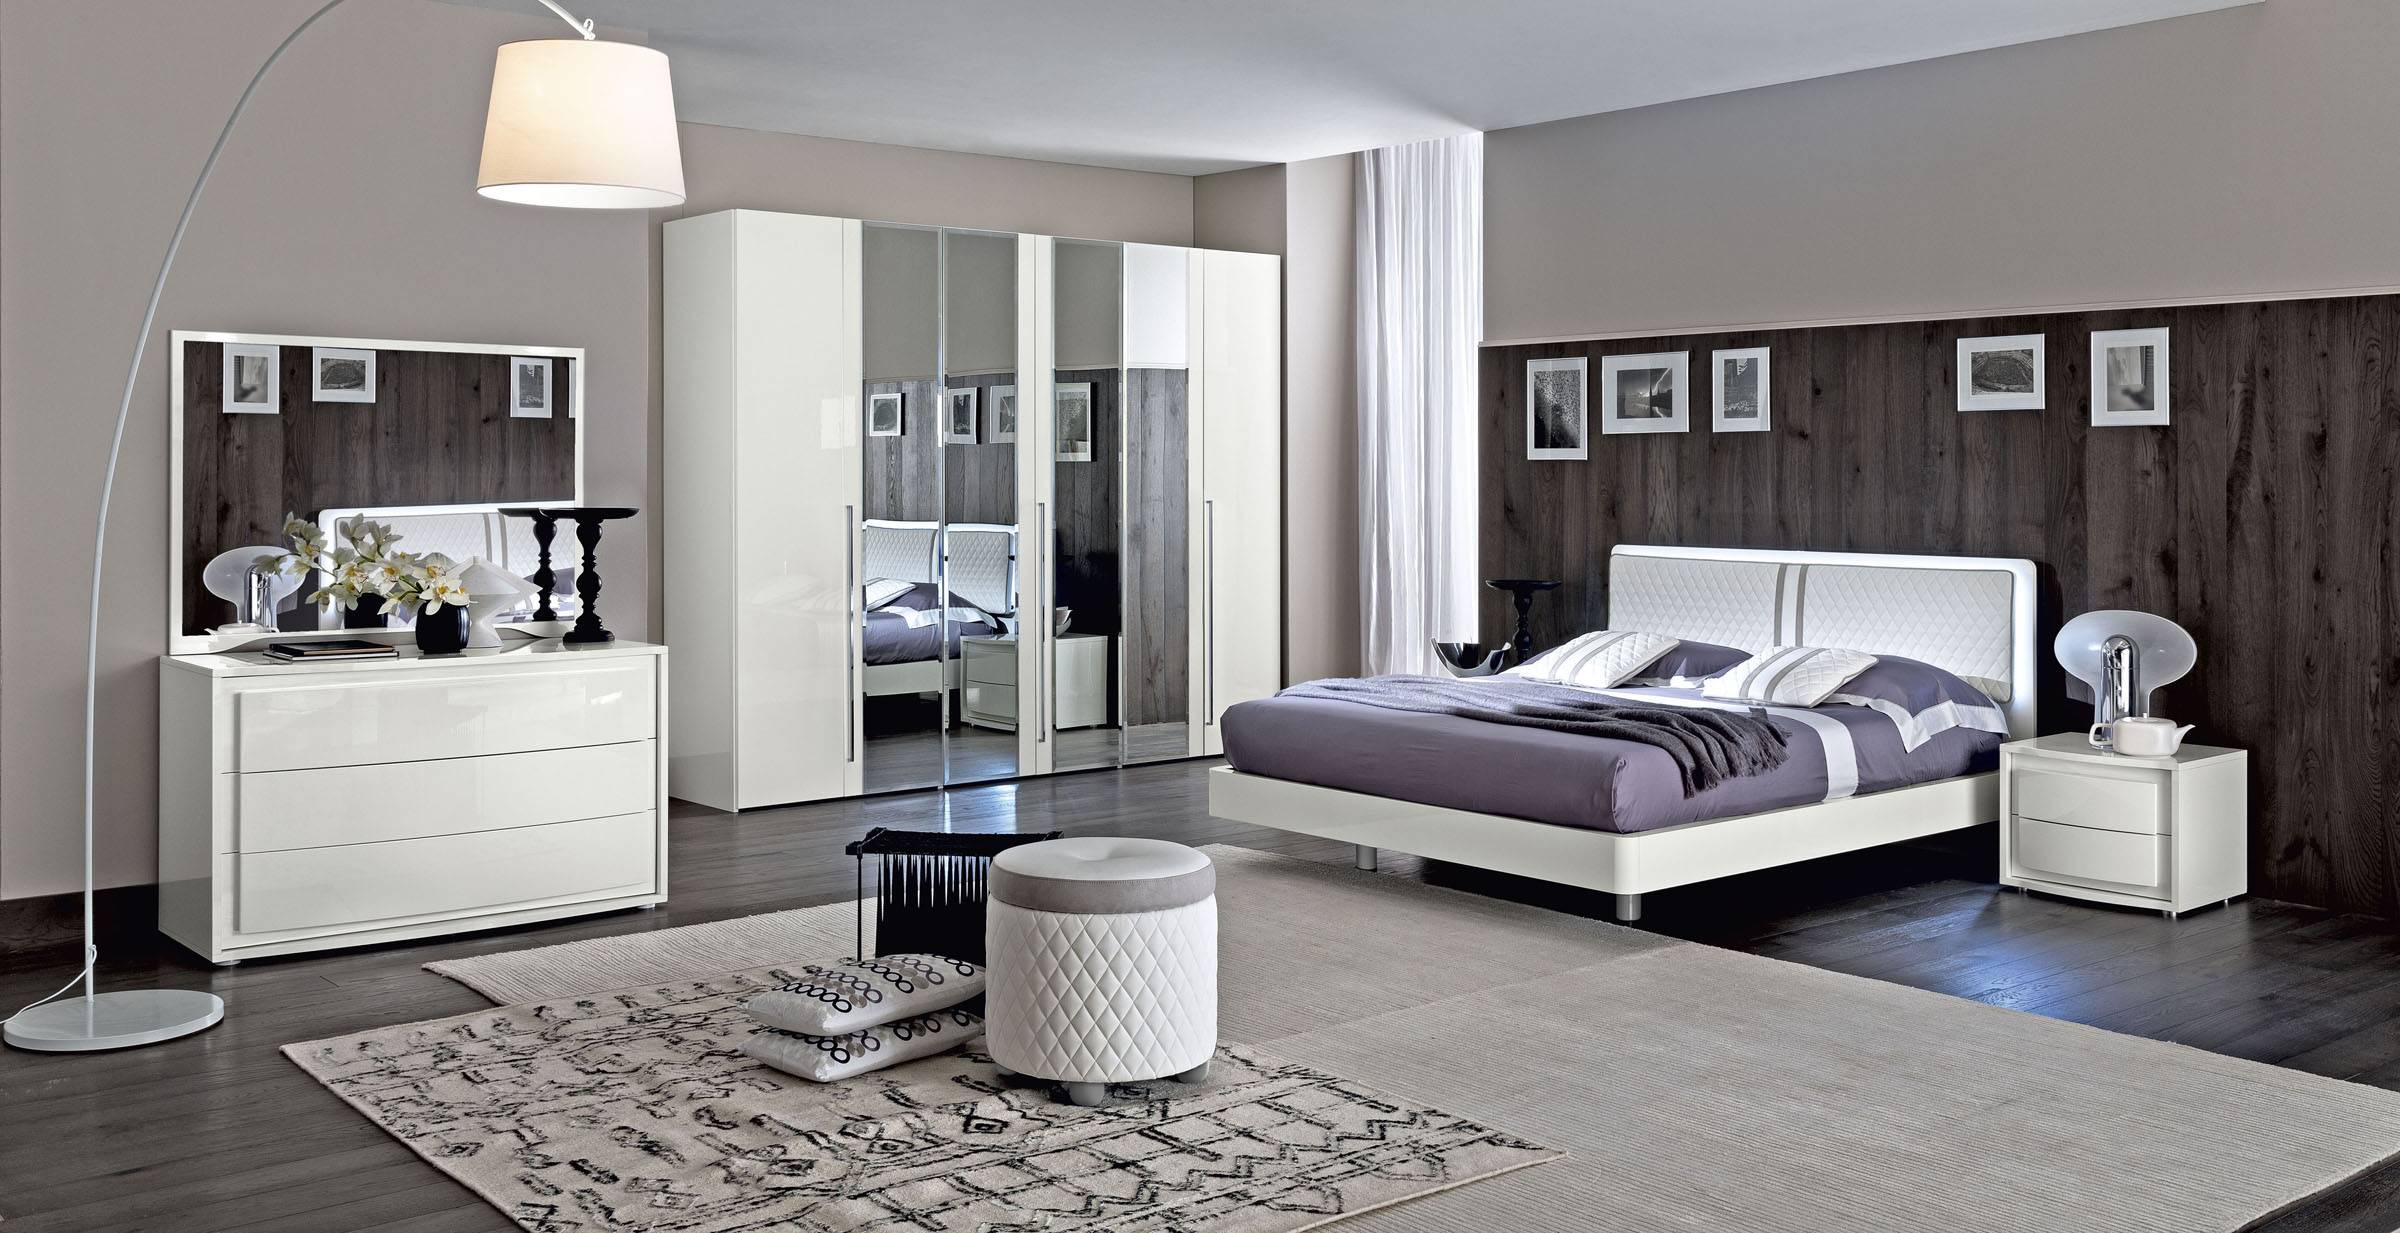 Made in italy wood modern contemporary master beds tempe arizona esf camelgroup dama bianca - Designer bedroom picture ...